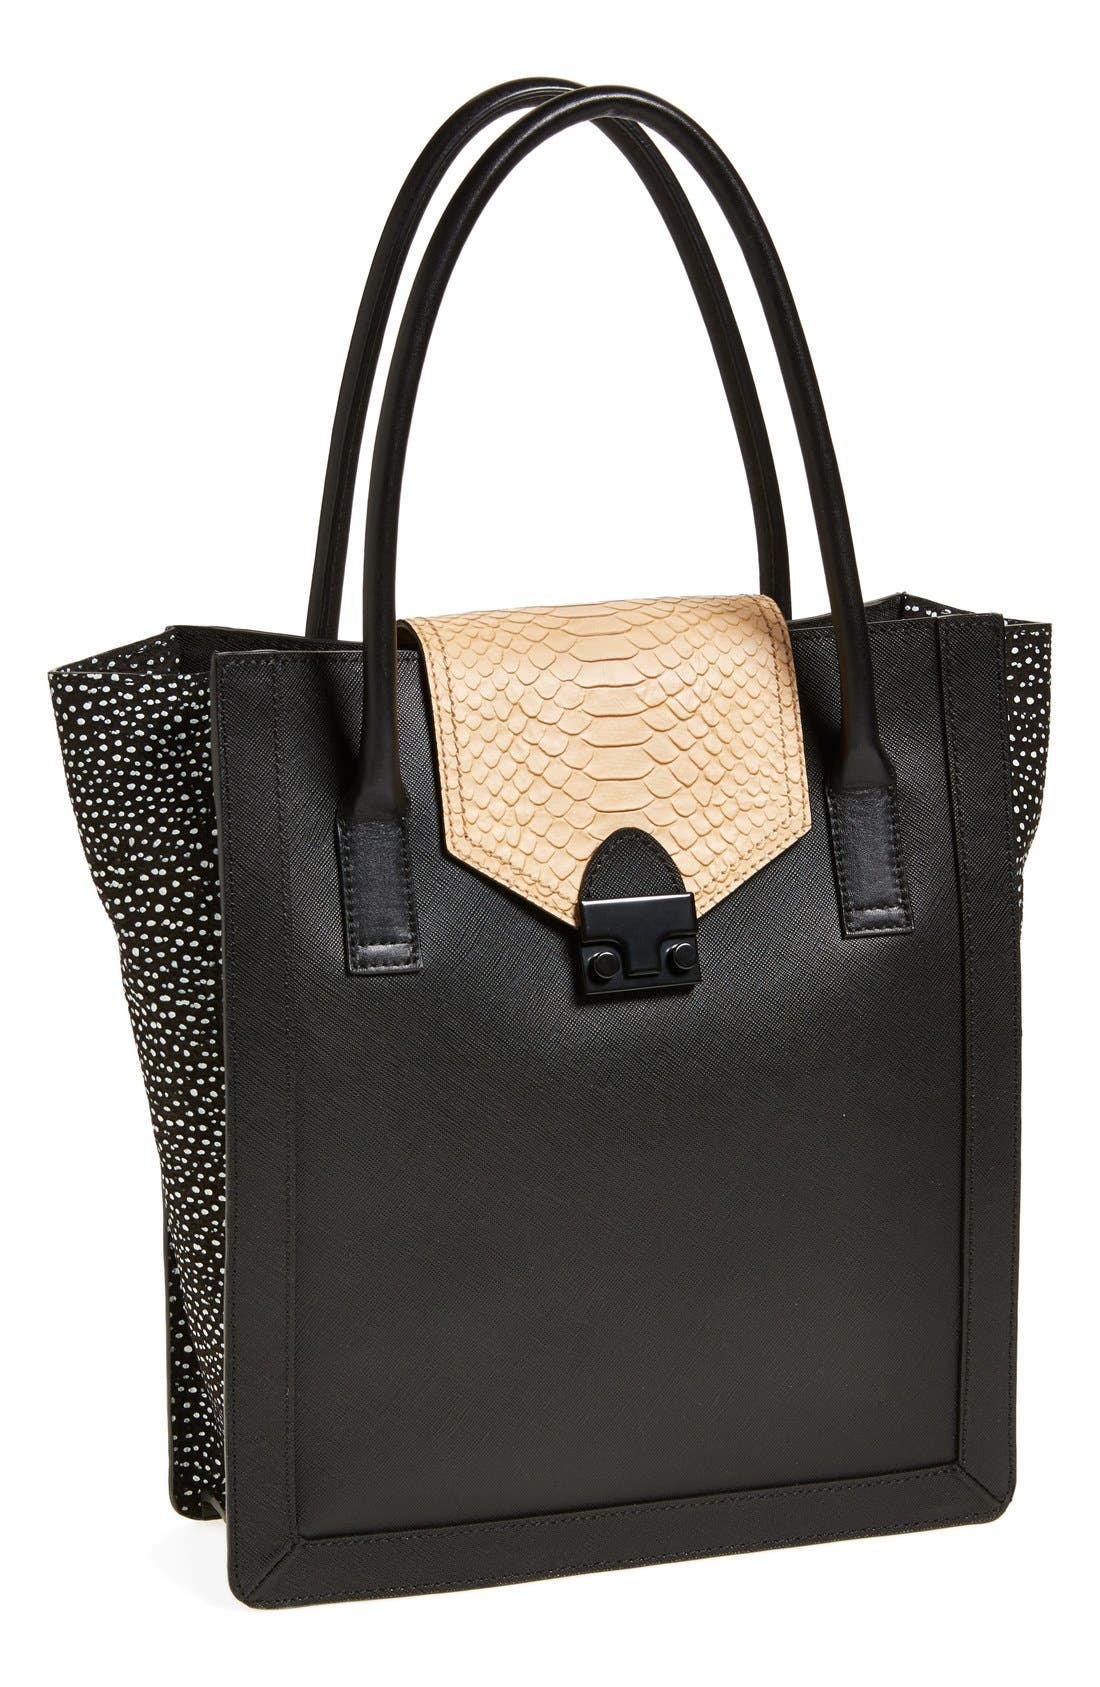 Alternate Image 1 Selected - Loeffler Randall 'Work' Tote